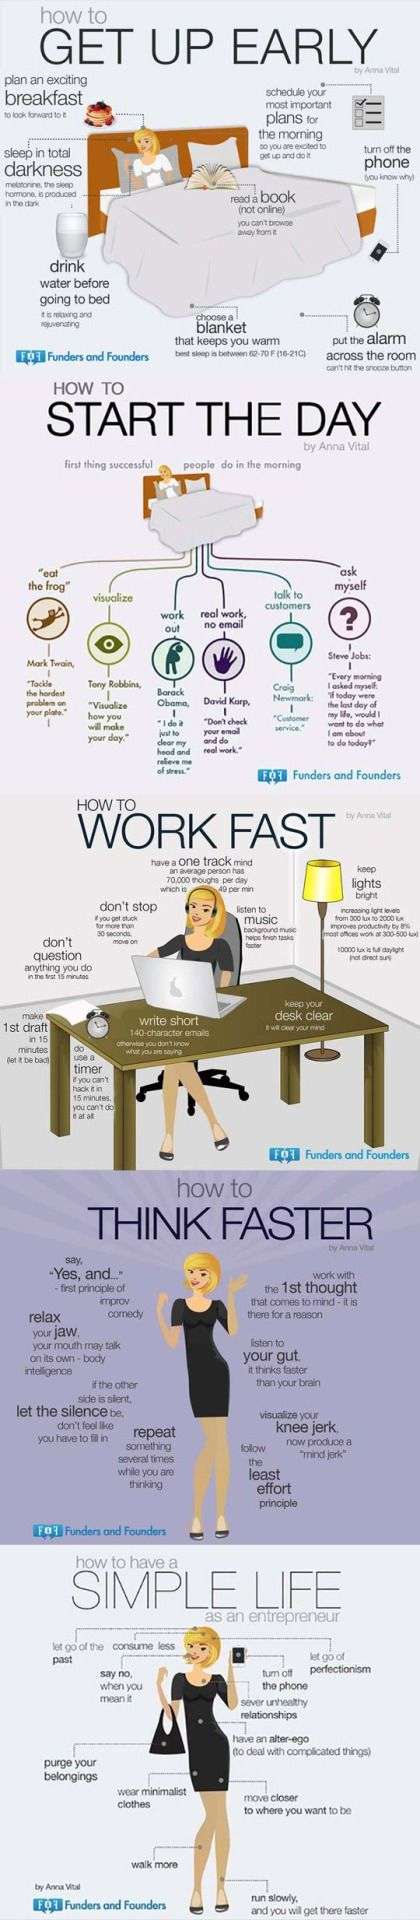 Useful Tips How to get up early, How to start the day, How to work fast, How to think faster and How to have a SIMPLE LIFE as an entrepreneur love positive words